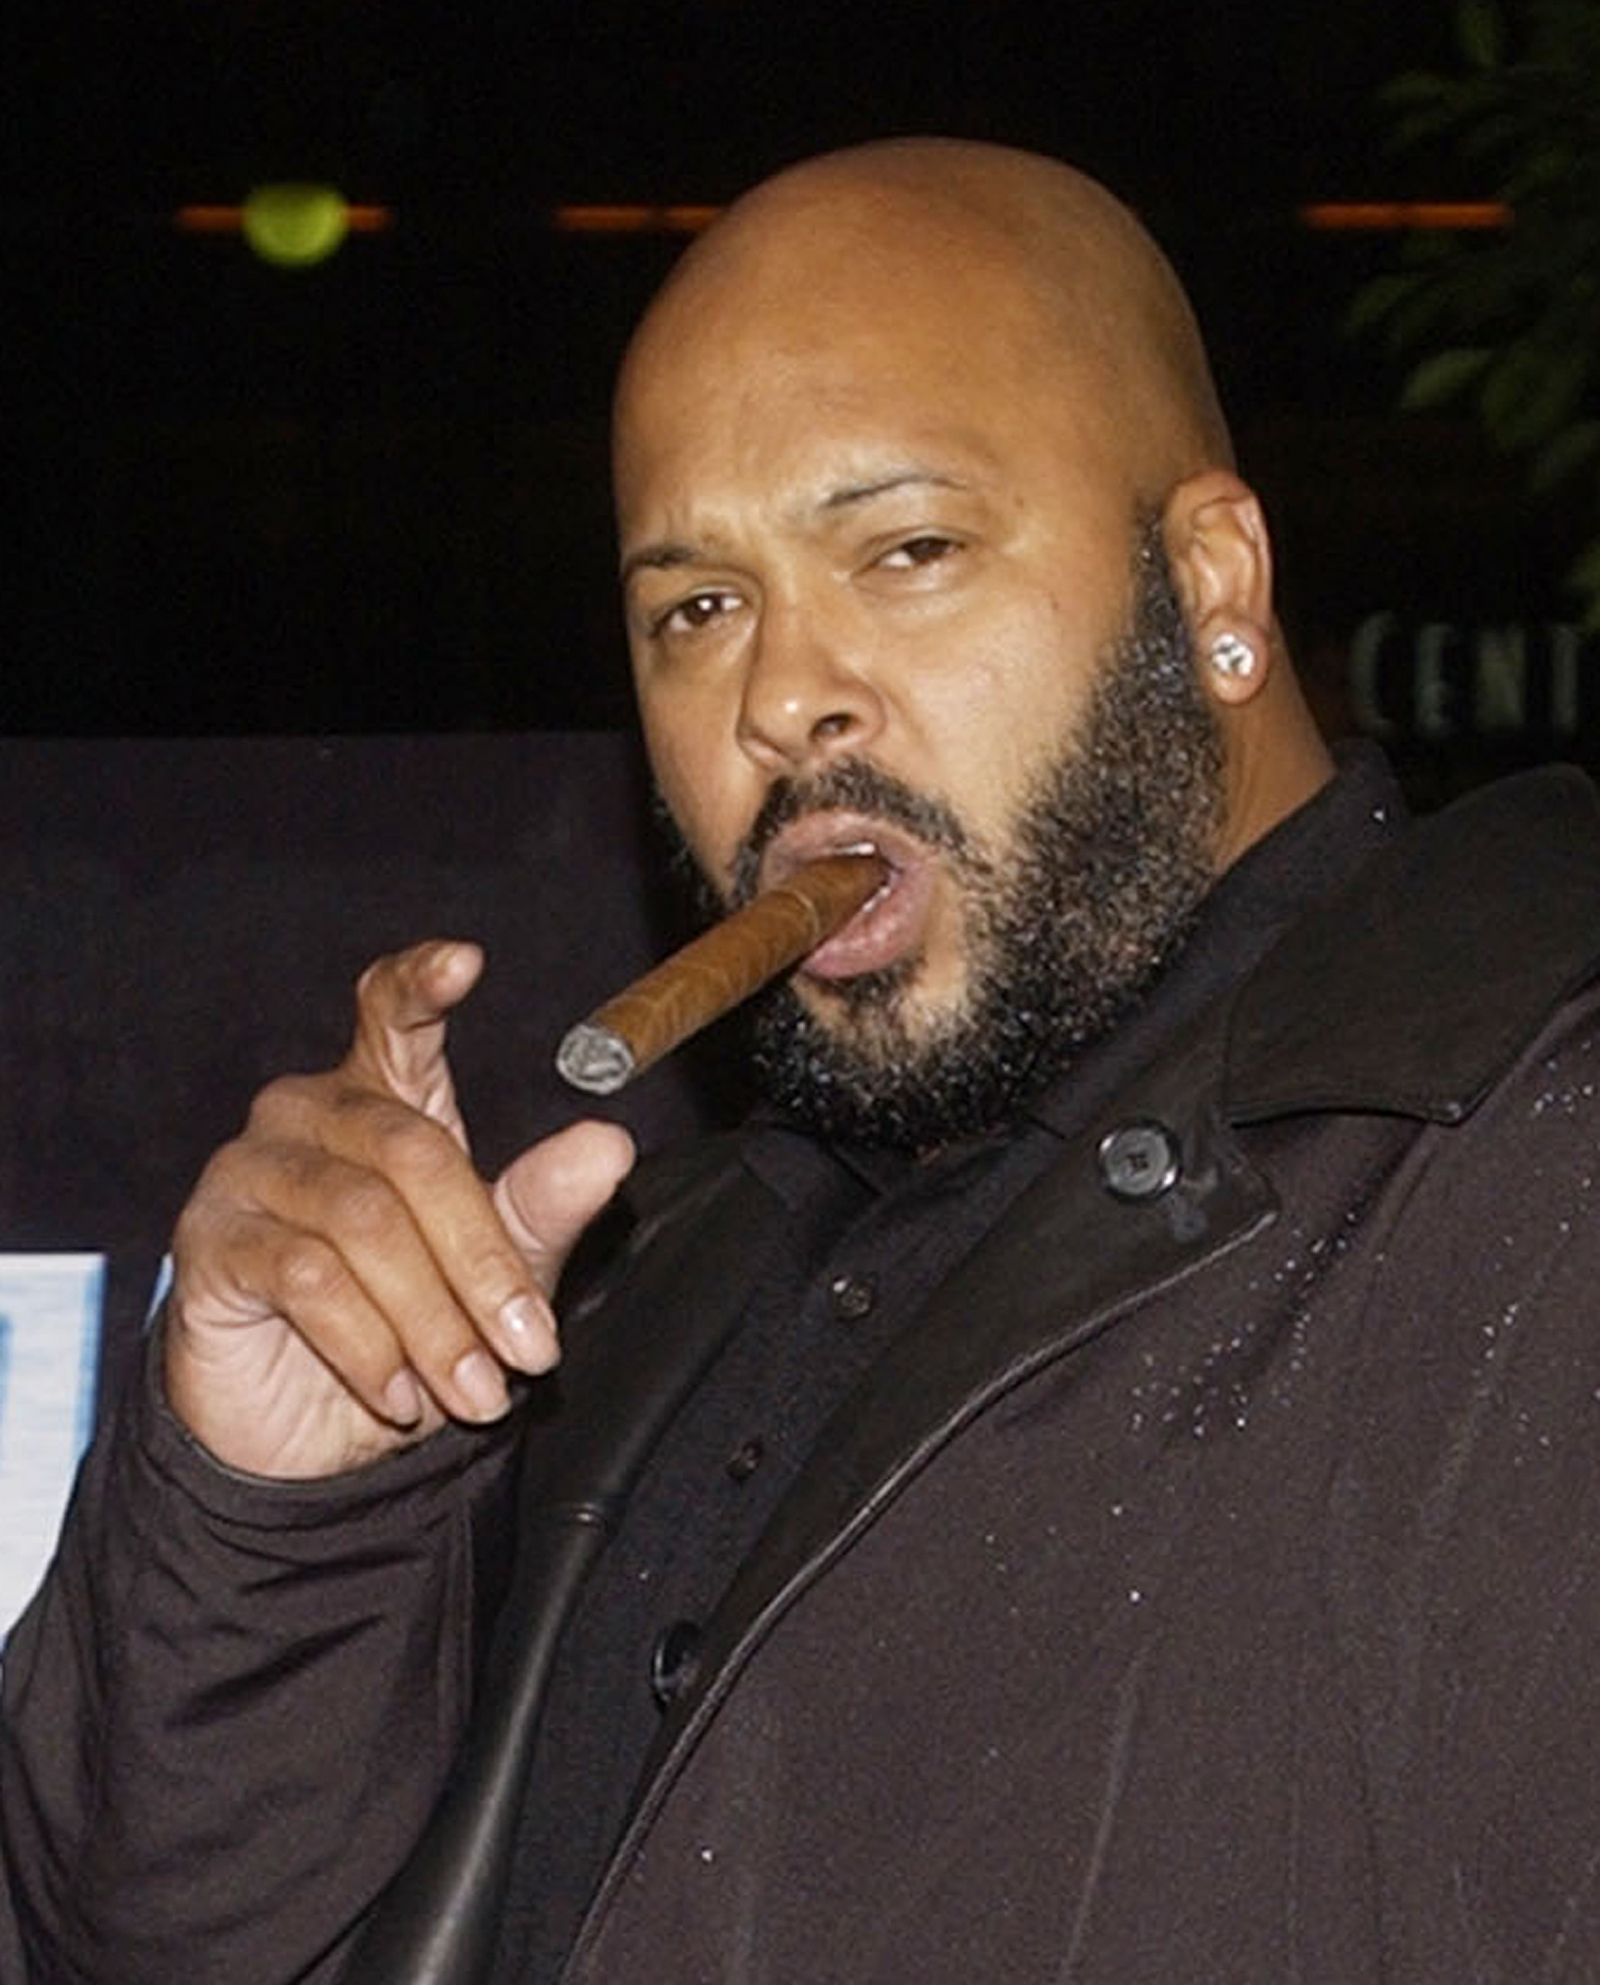 Suge Knight Rap Mogul Charged With Murder For Alleged Hit